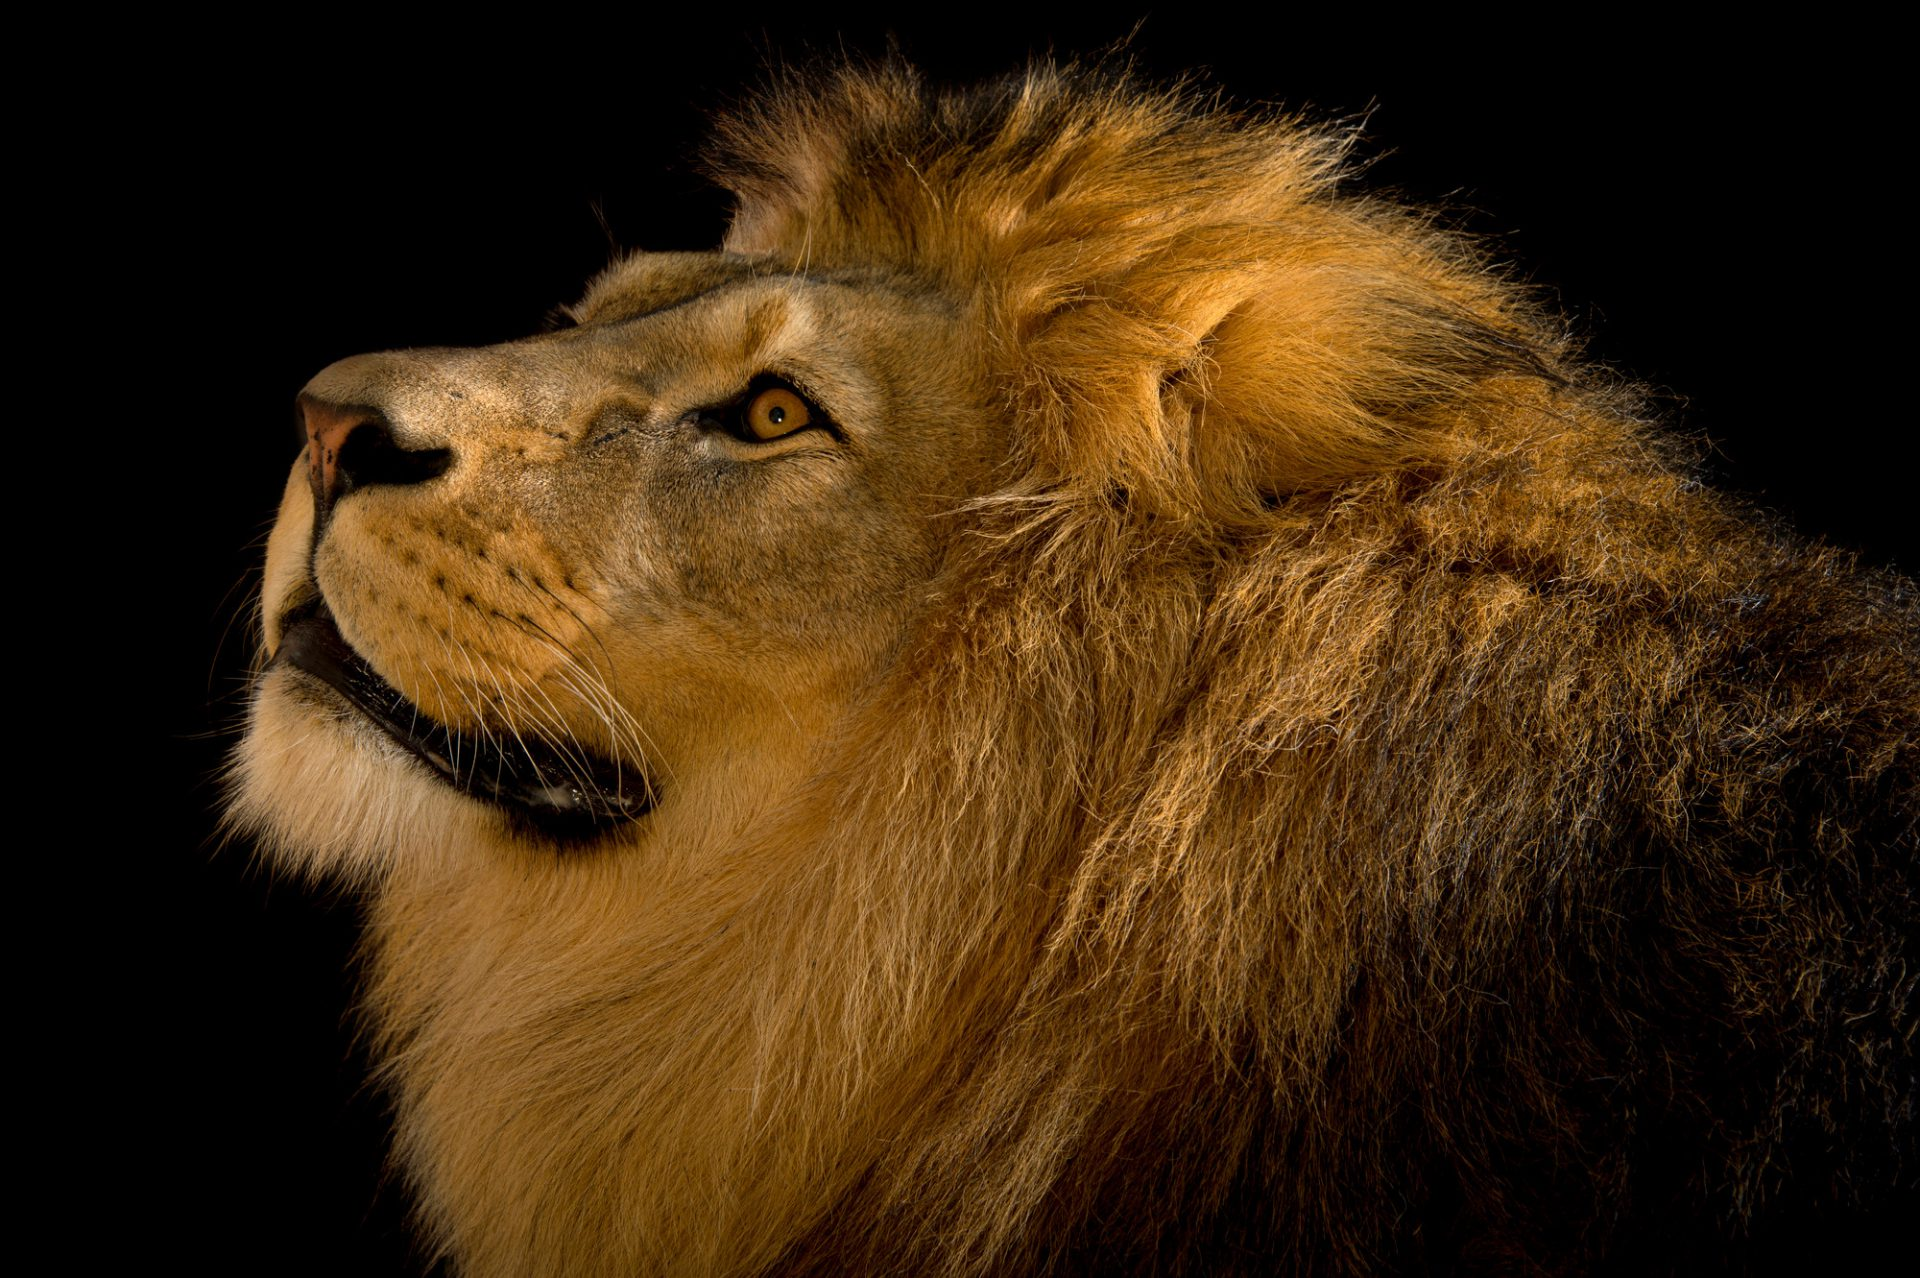 Picture of a Barbary lion (Panthera leo leo) at the Plzen Zoo in the Czech Republic.